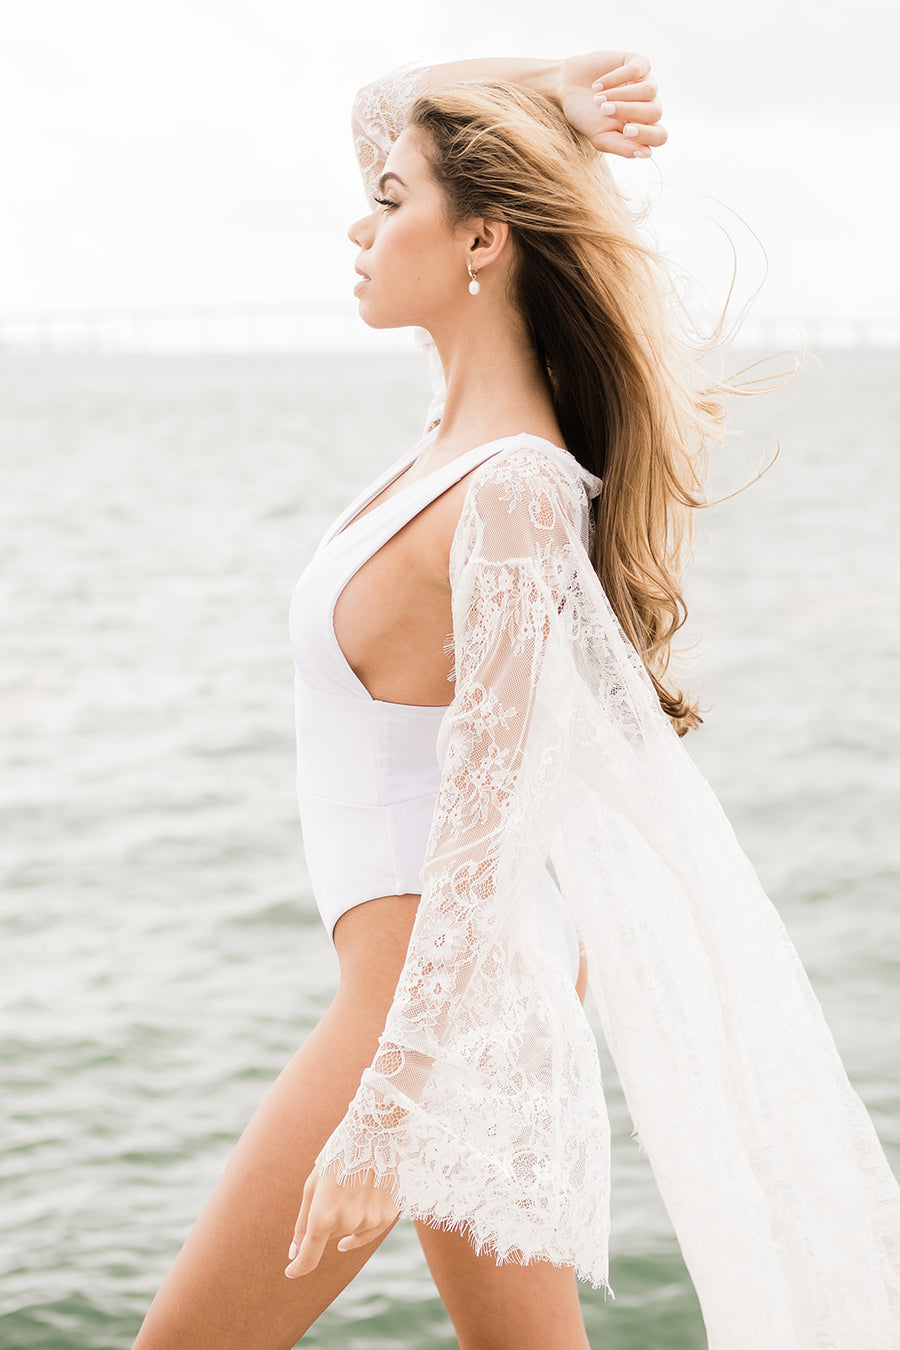 The Capri Lace Kimono Cover Up - The Beach Bride by Chic Parisien, a destination for beach weddings, bachelorettes and honeymoons